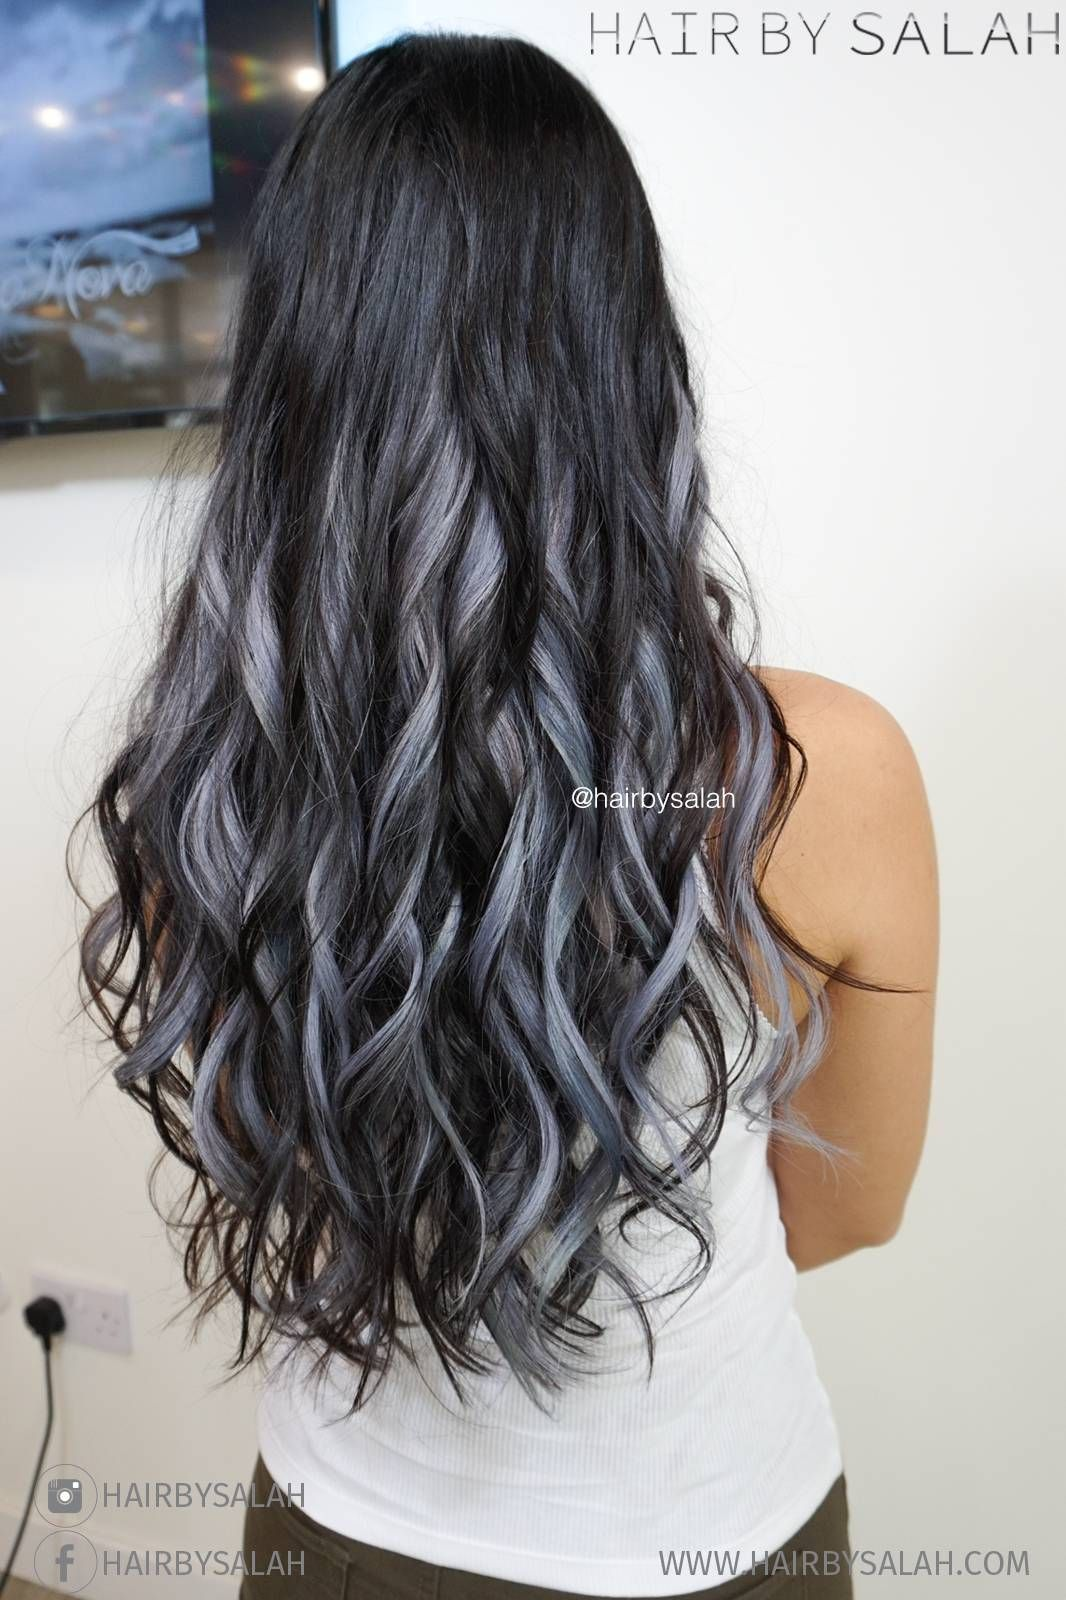 49+ Black and silver balayage ideas in 2021